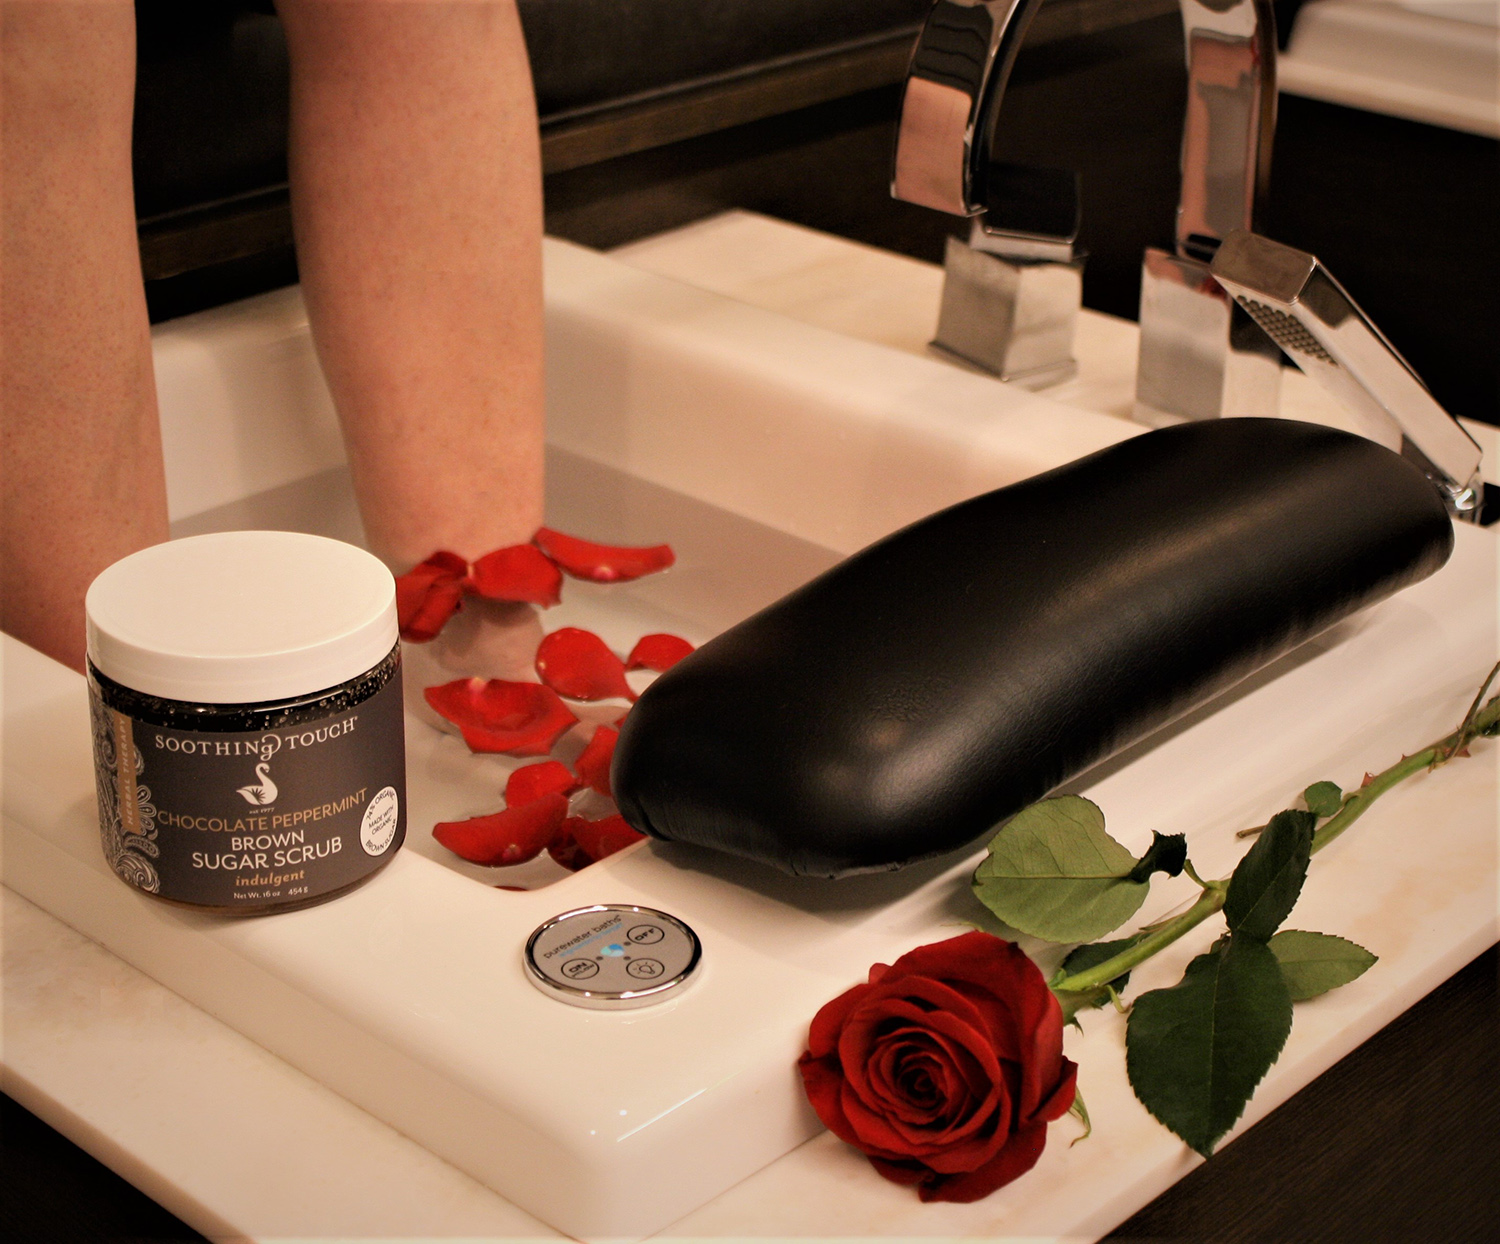 Pedicure with rose-infused waters and chocolate peppermint brown sugar scrub at The Spa at Lincolnshire.